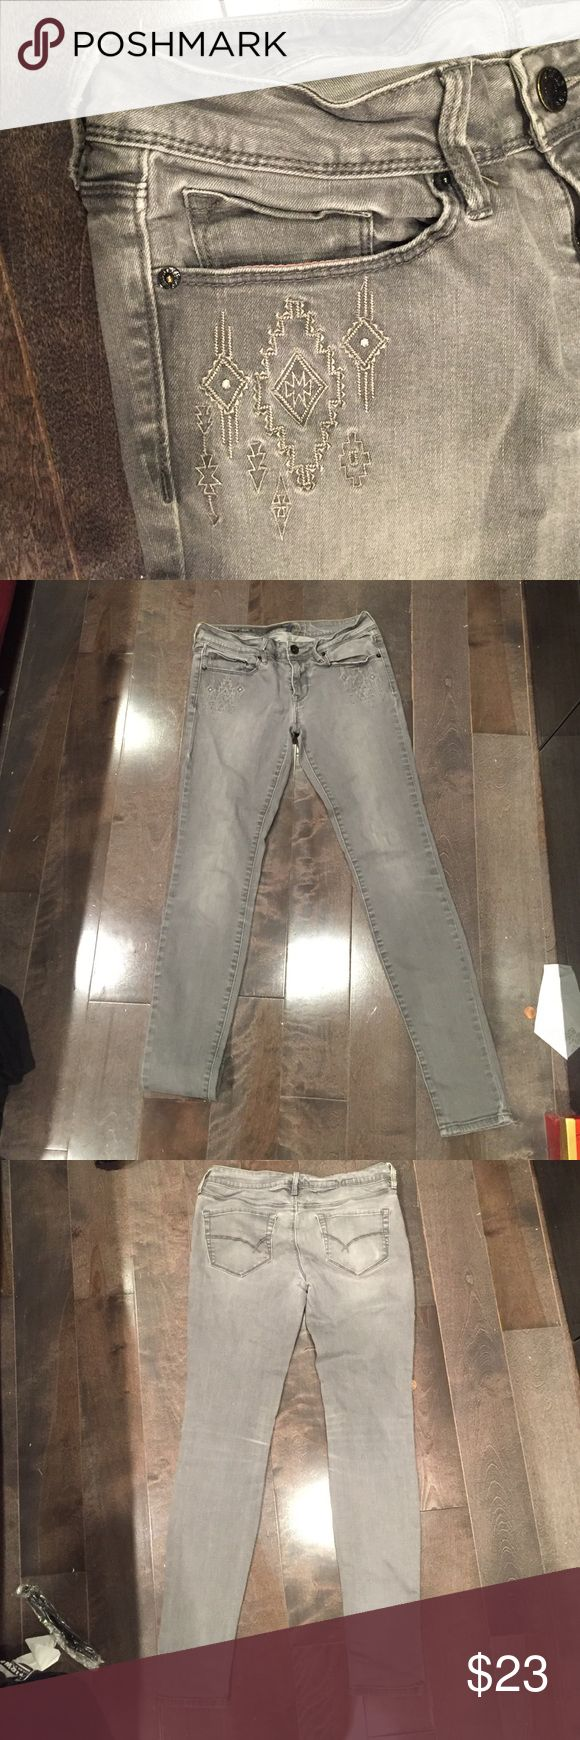 Grey tribal print skinny jeans Light wash grey skinny jeans with tribal design on front pockets, comfy and flattering, good condition, fits more like a size 3 PacSun Jeans Skinny